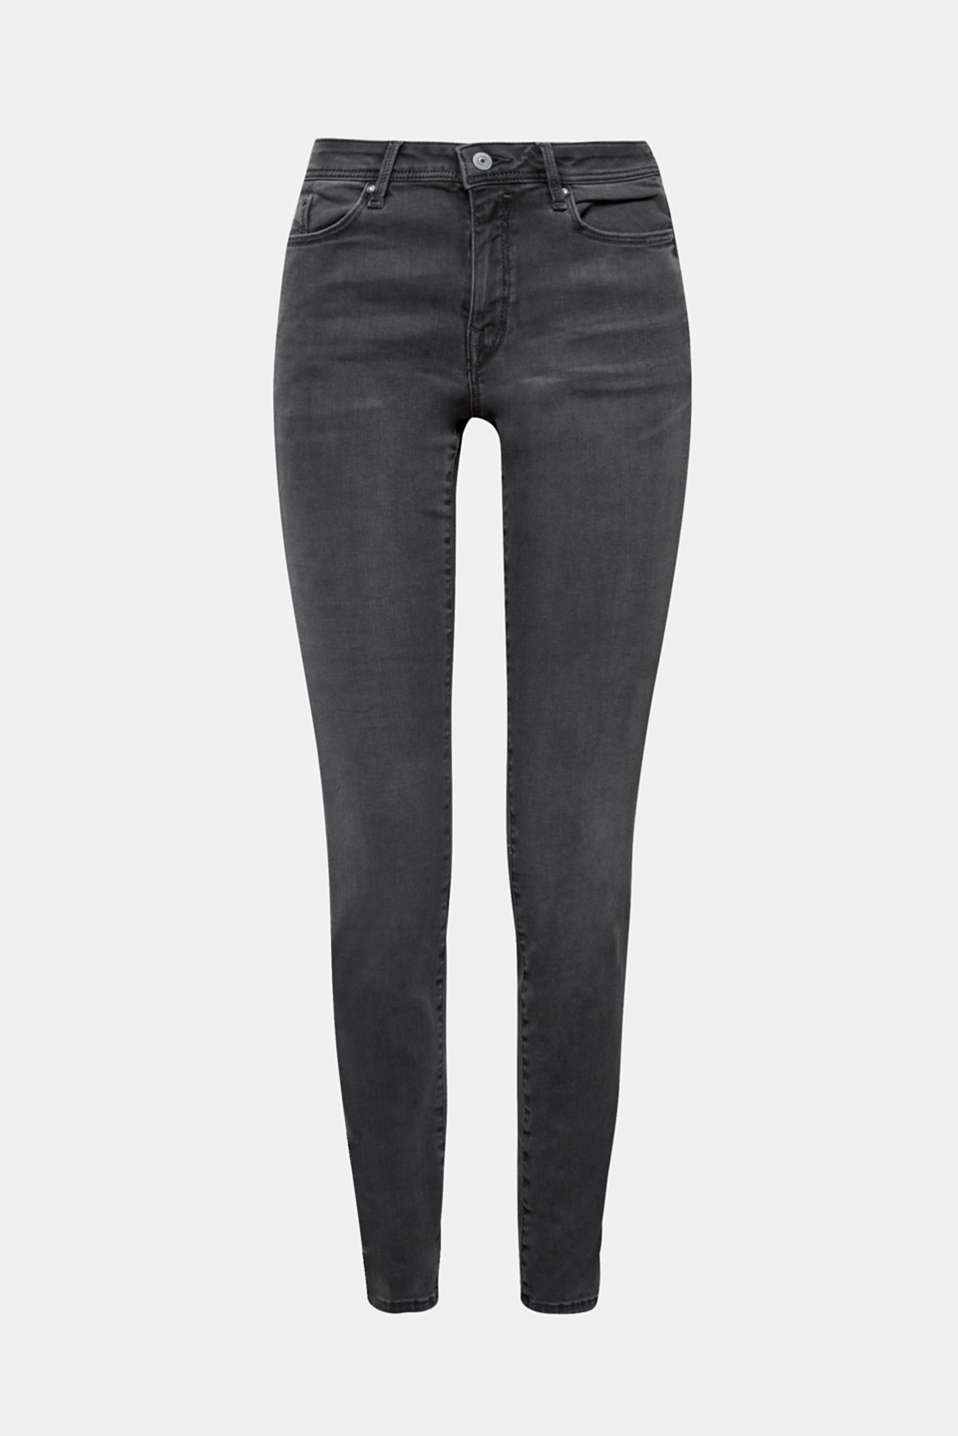 These skinny jeans are exceptionally soft, slim fitting and ultra stretchy and comfortable in partially recycled material!